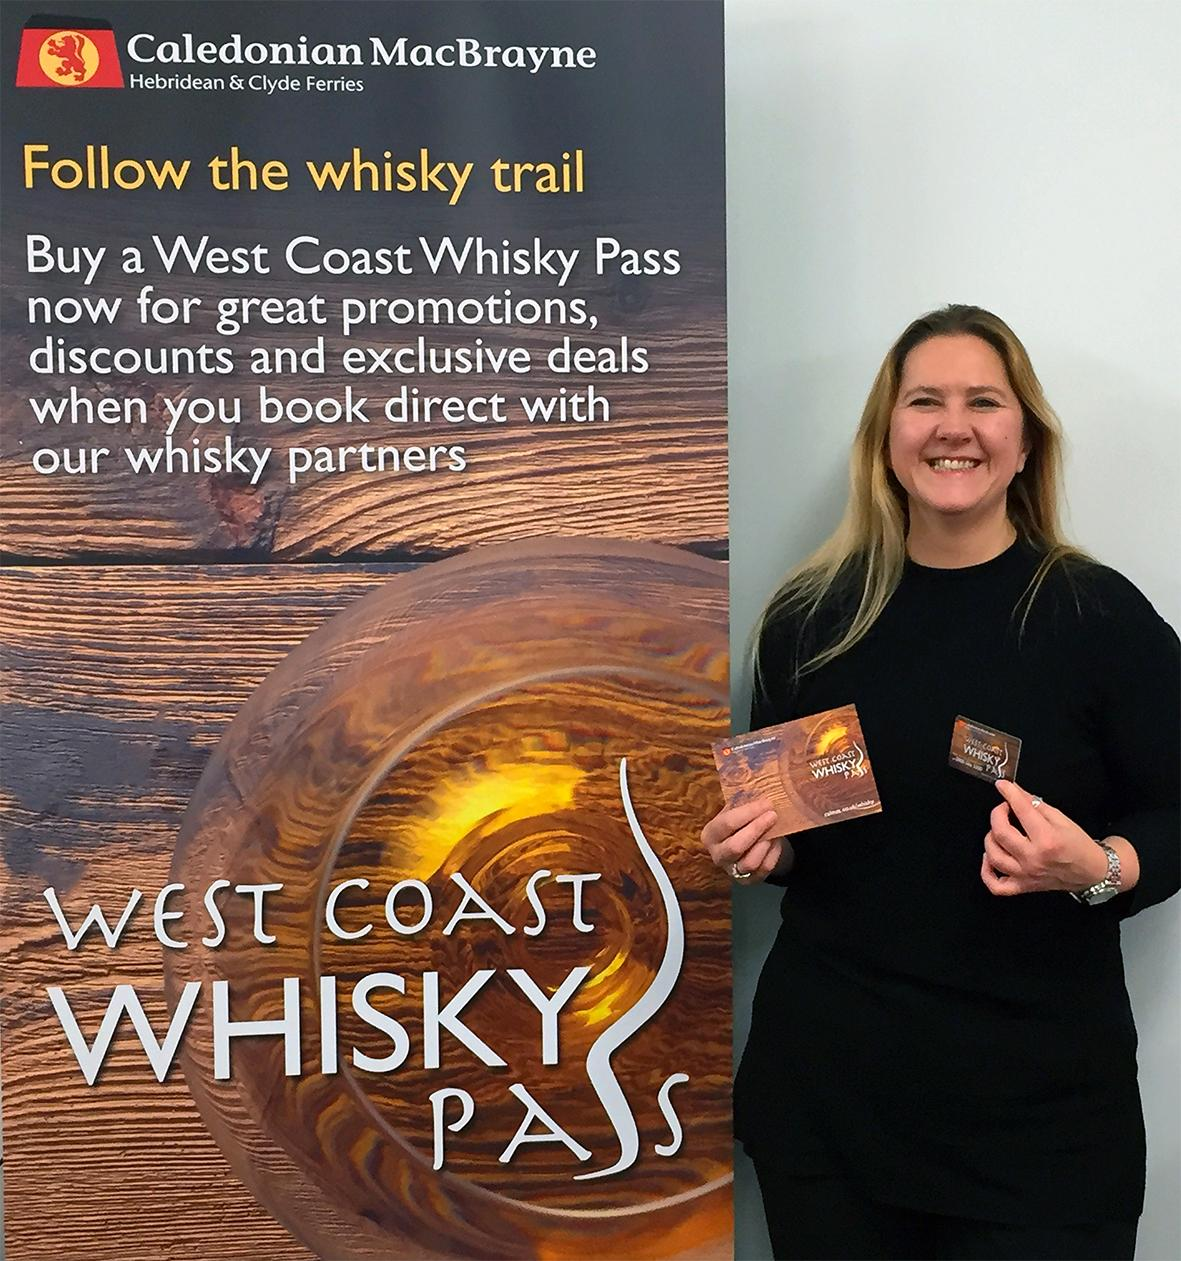 Launch of CalMac Whisky Pass